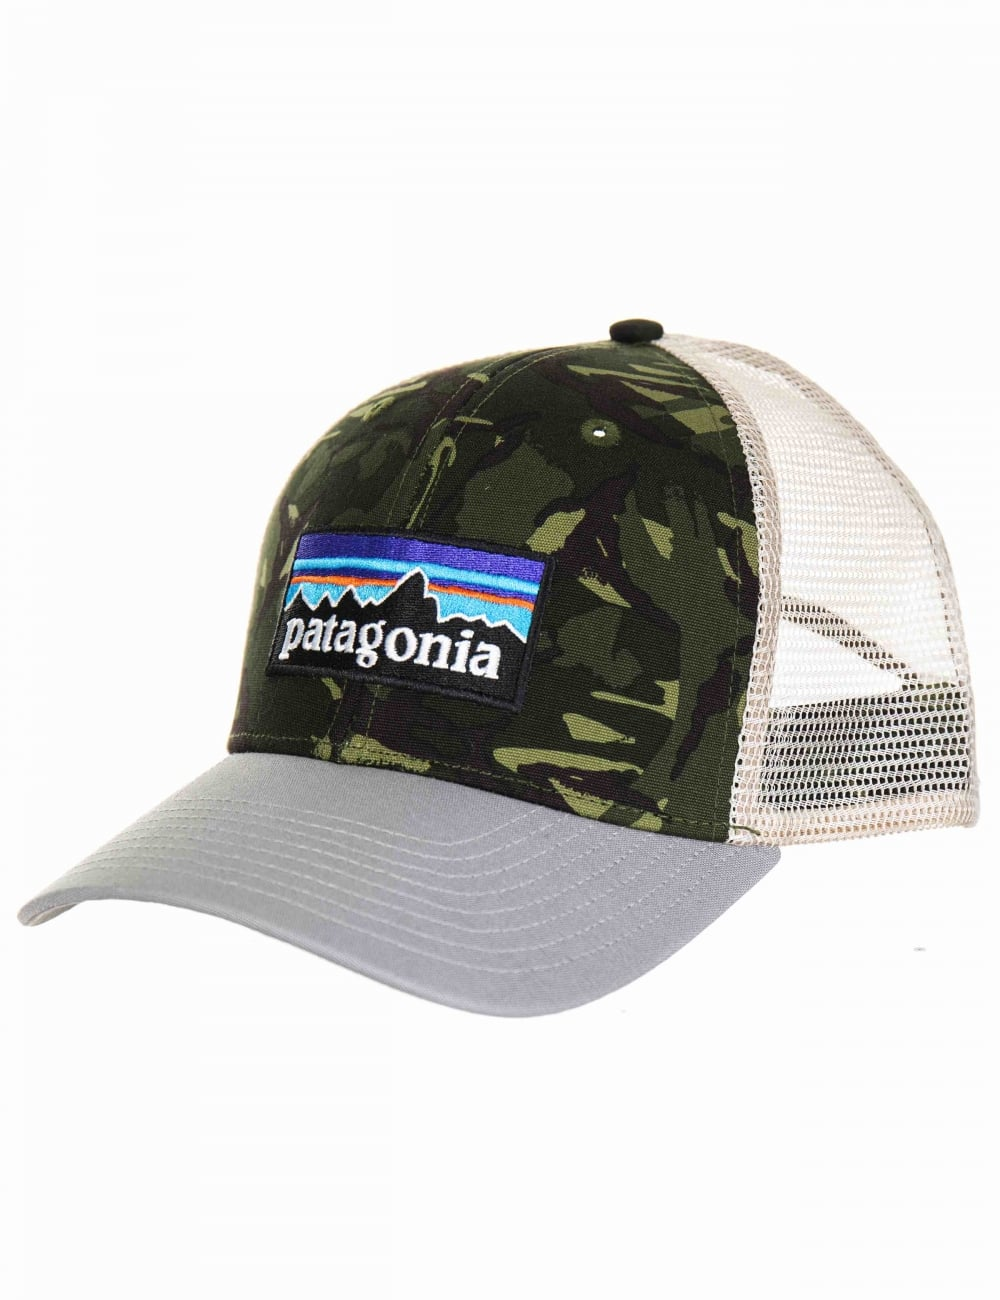 Patagonia P-6 Logo Trucker Hat - Big Camo Fatique Green with Drifter Grey d54b952b2f8e